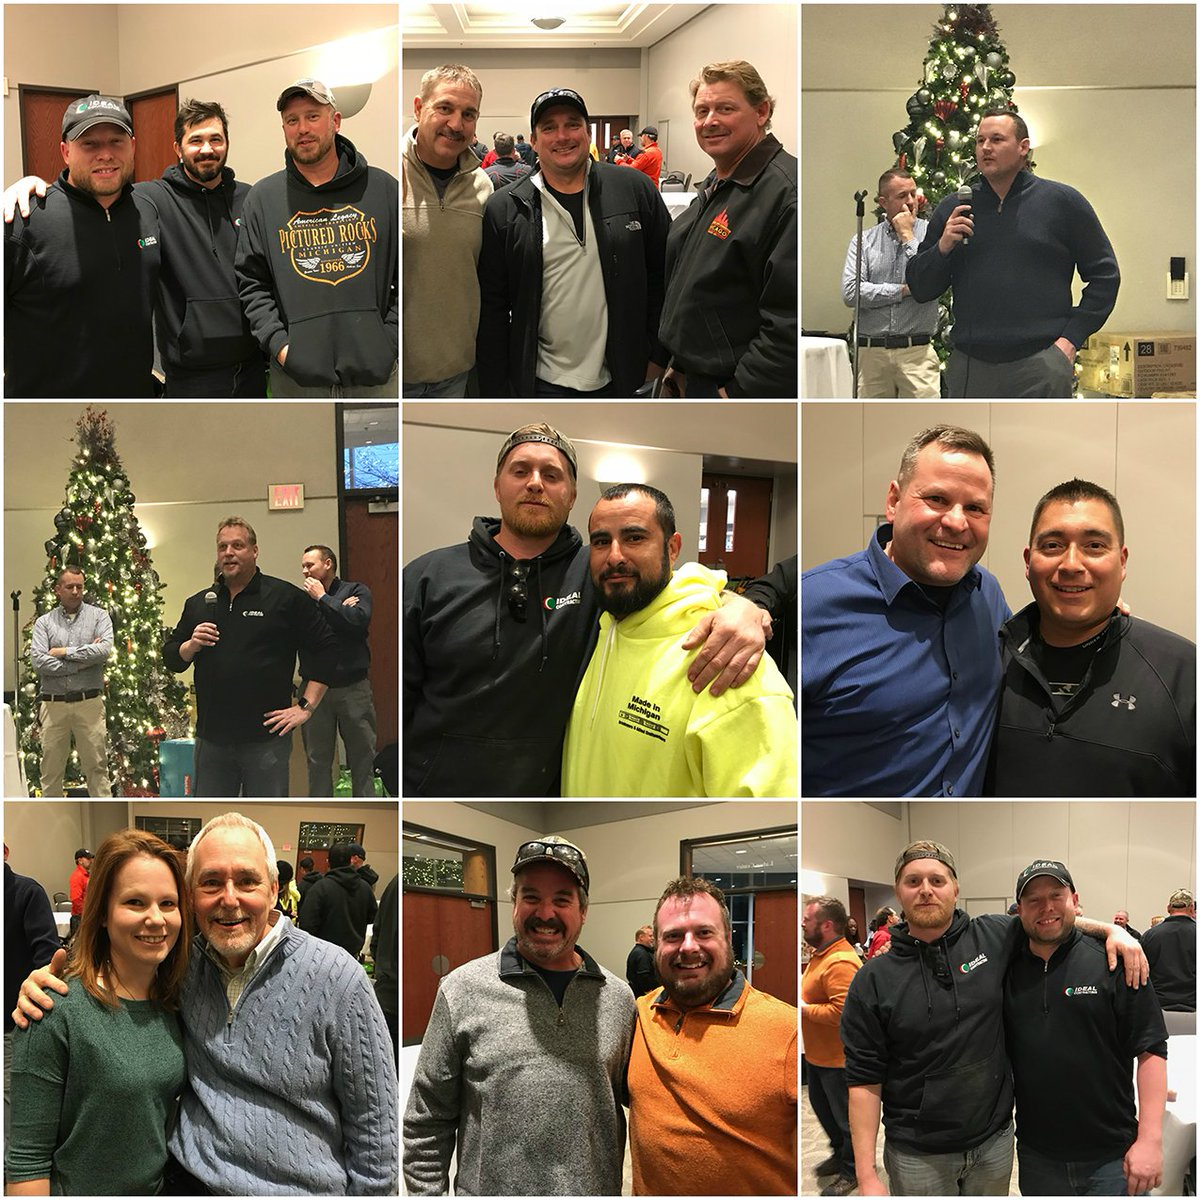 test Twitter Media - Our annual Foreman Holiday Appreciation Party! A huge thank you to the Foreman for all your hard work and dedication!! https://t.co/GYwW4GyRiJ